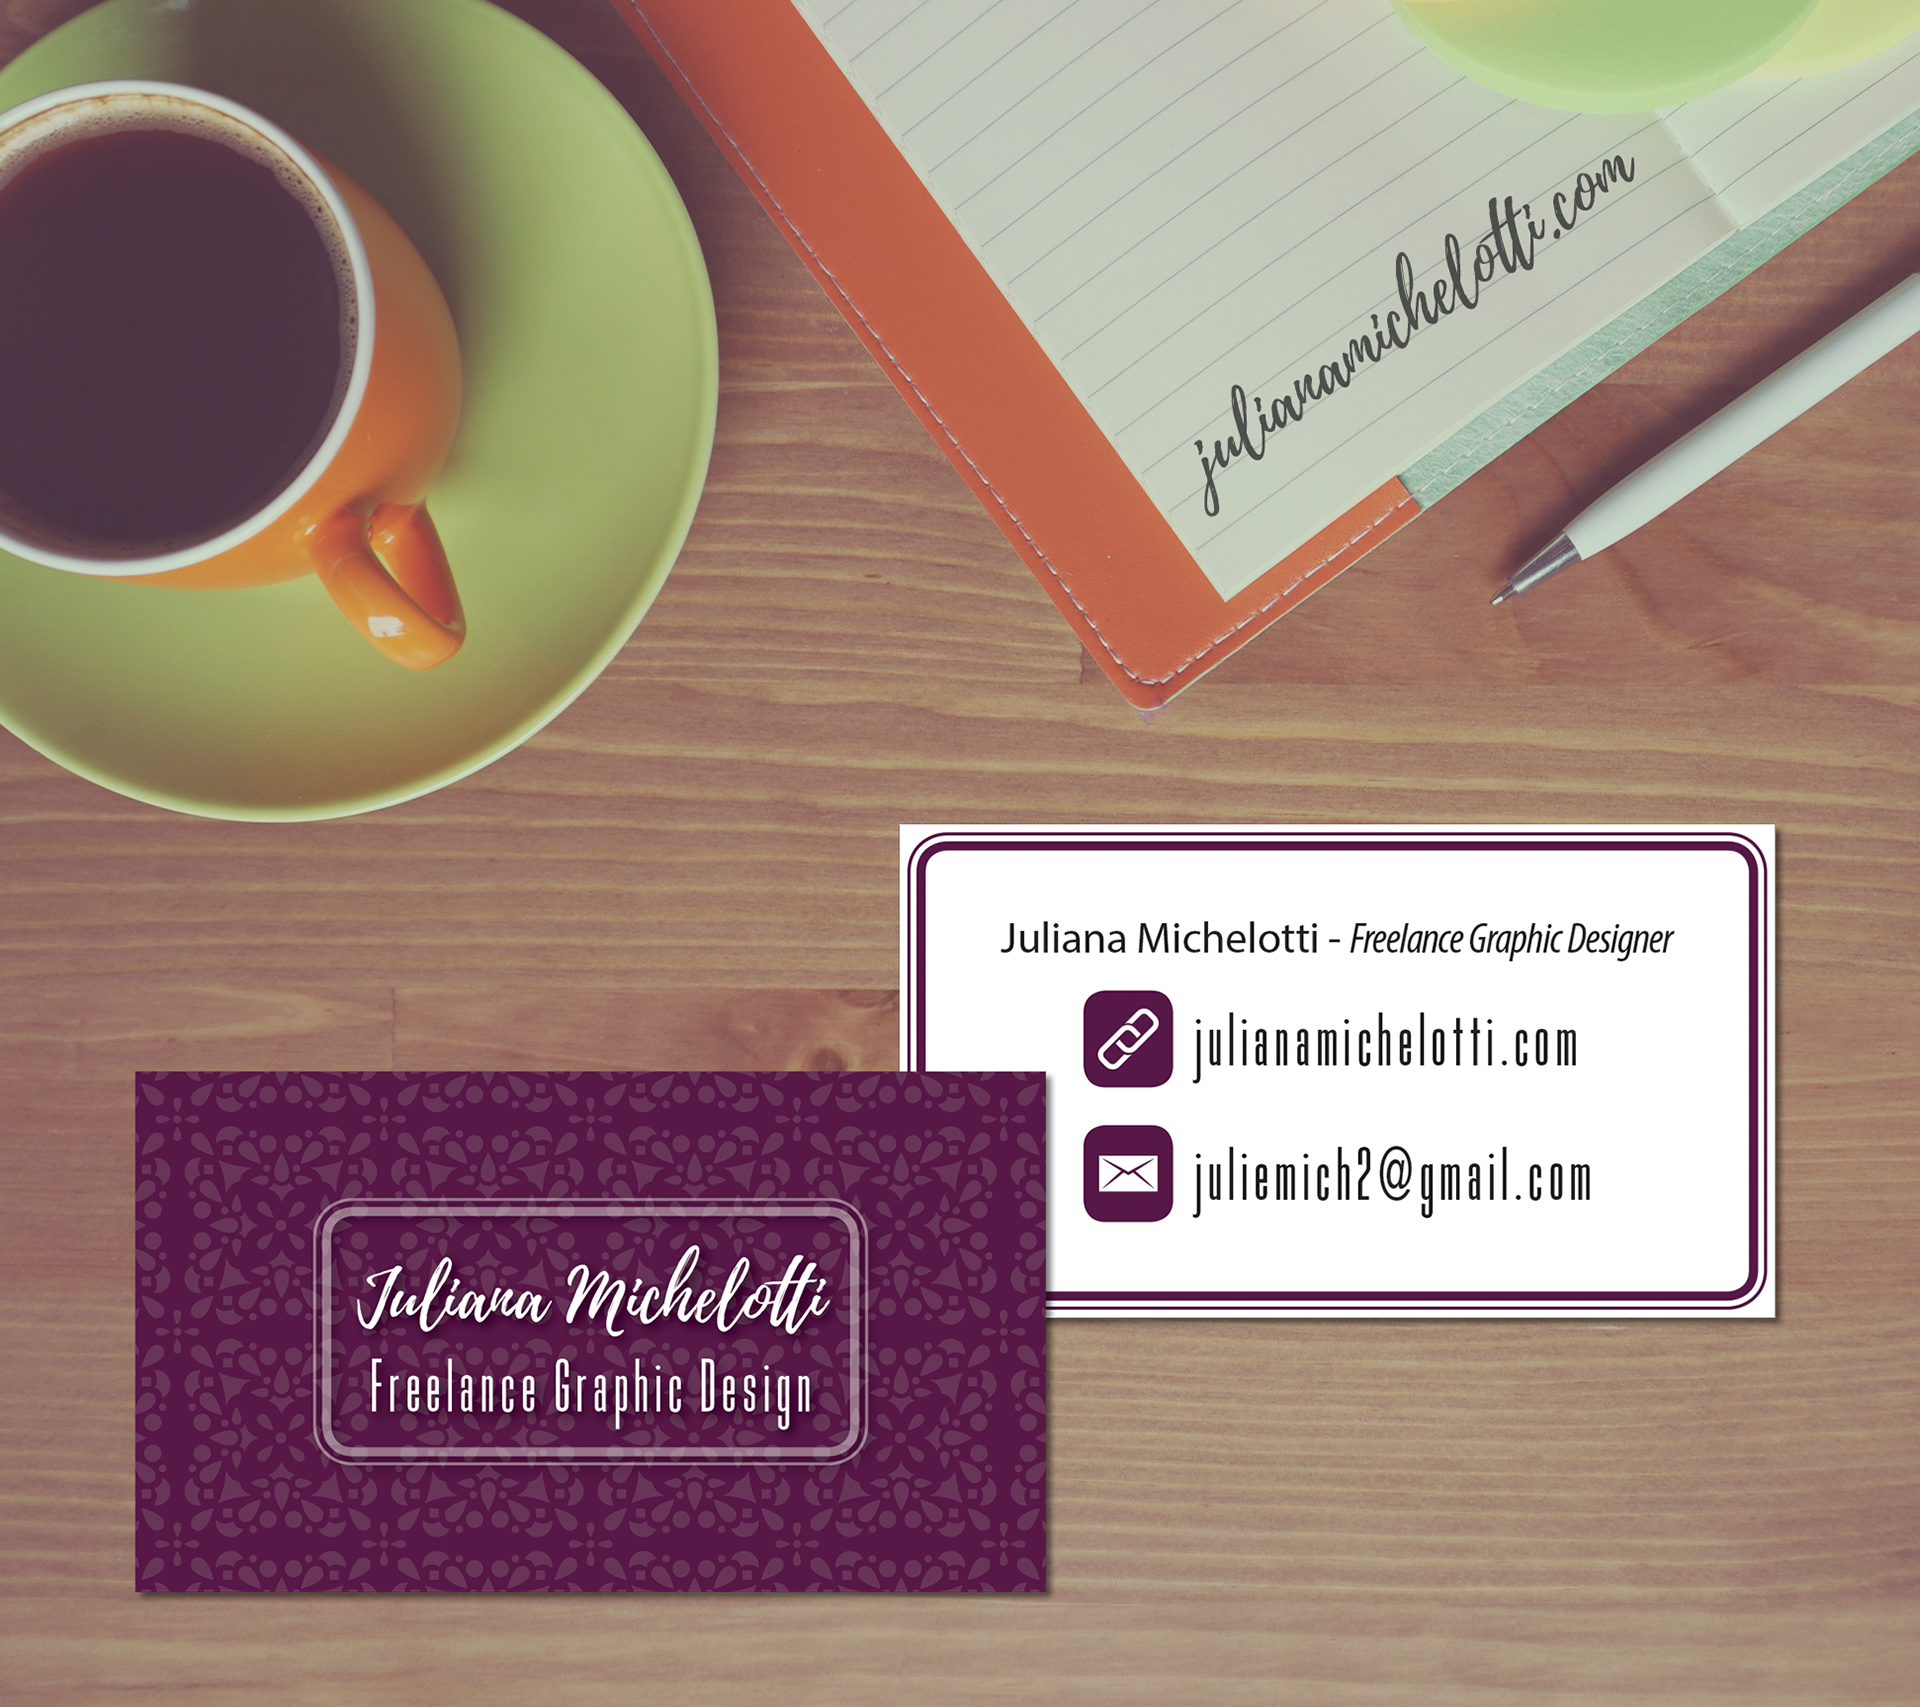 Juliana michelotti personal business card personal business card reheart Gallery